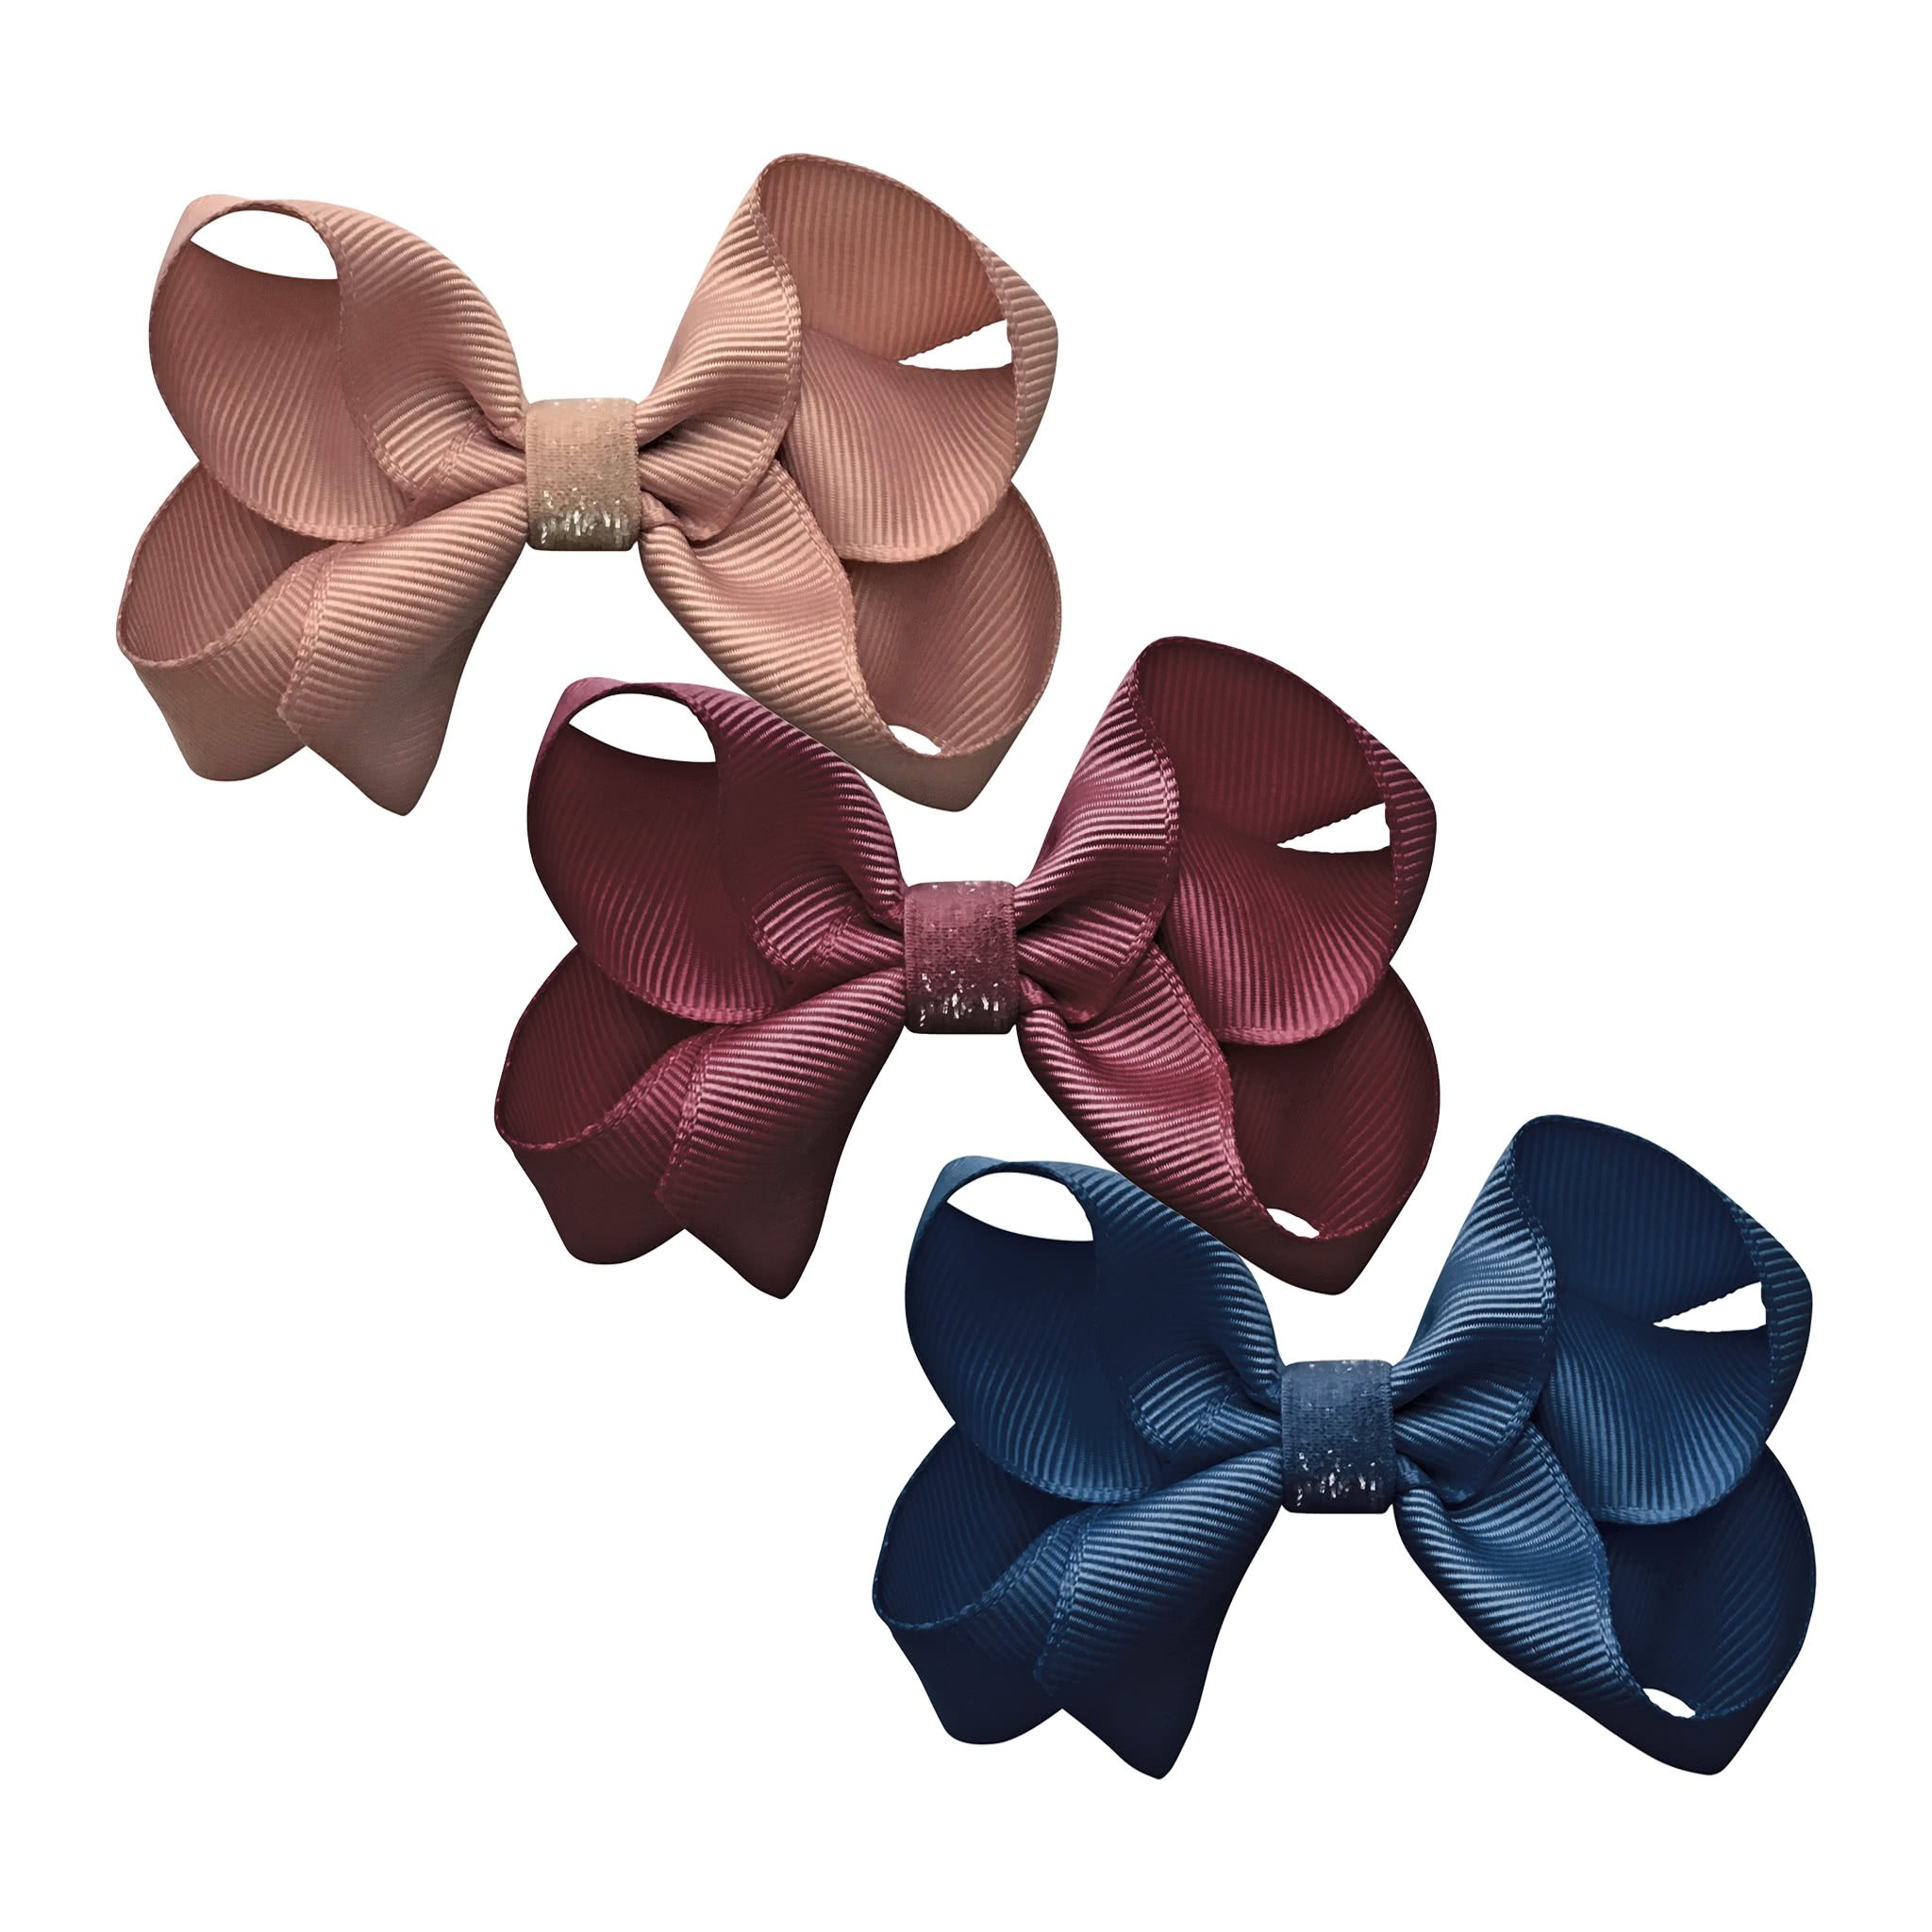 Image of Milledeux® gift set - Colored Glitter Collection - 3 Medium boutique bows - A128